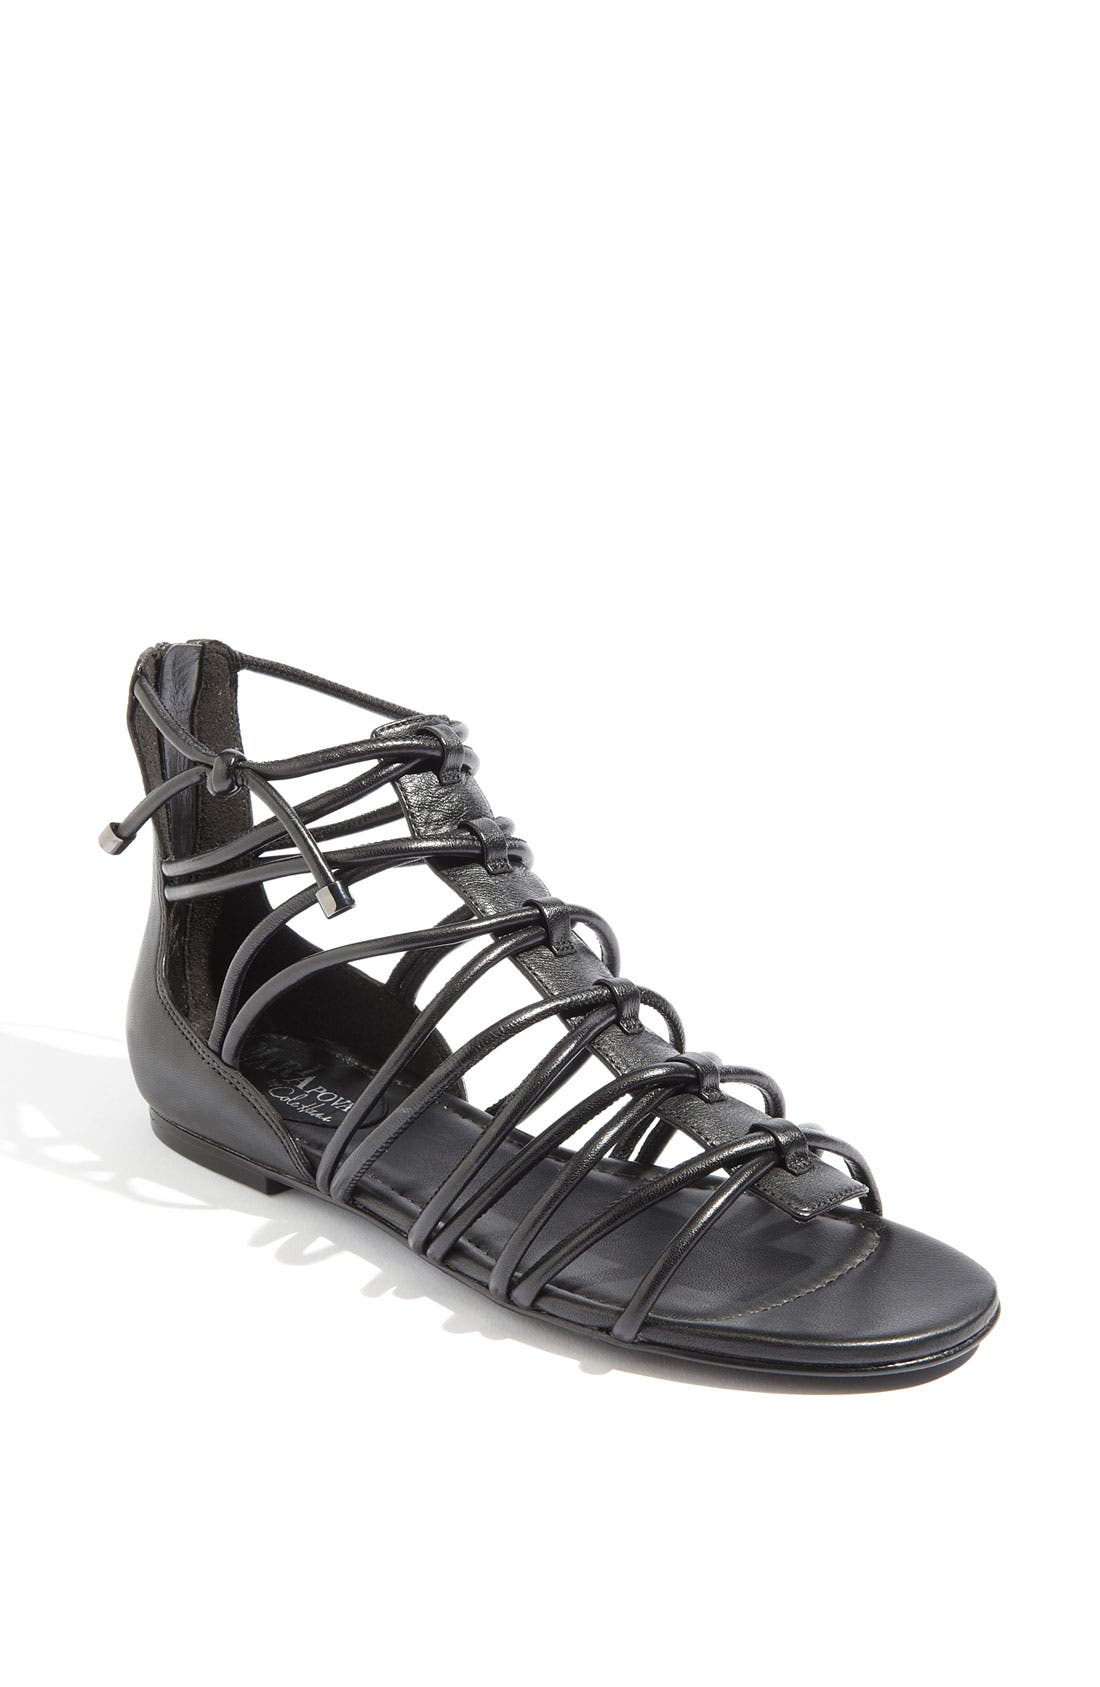 Main Image - Maria Sharapova by Cole Haan 'Air Marcela' Flat Sandal